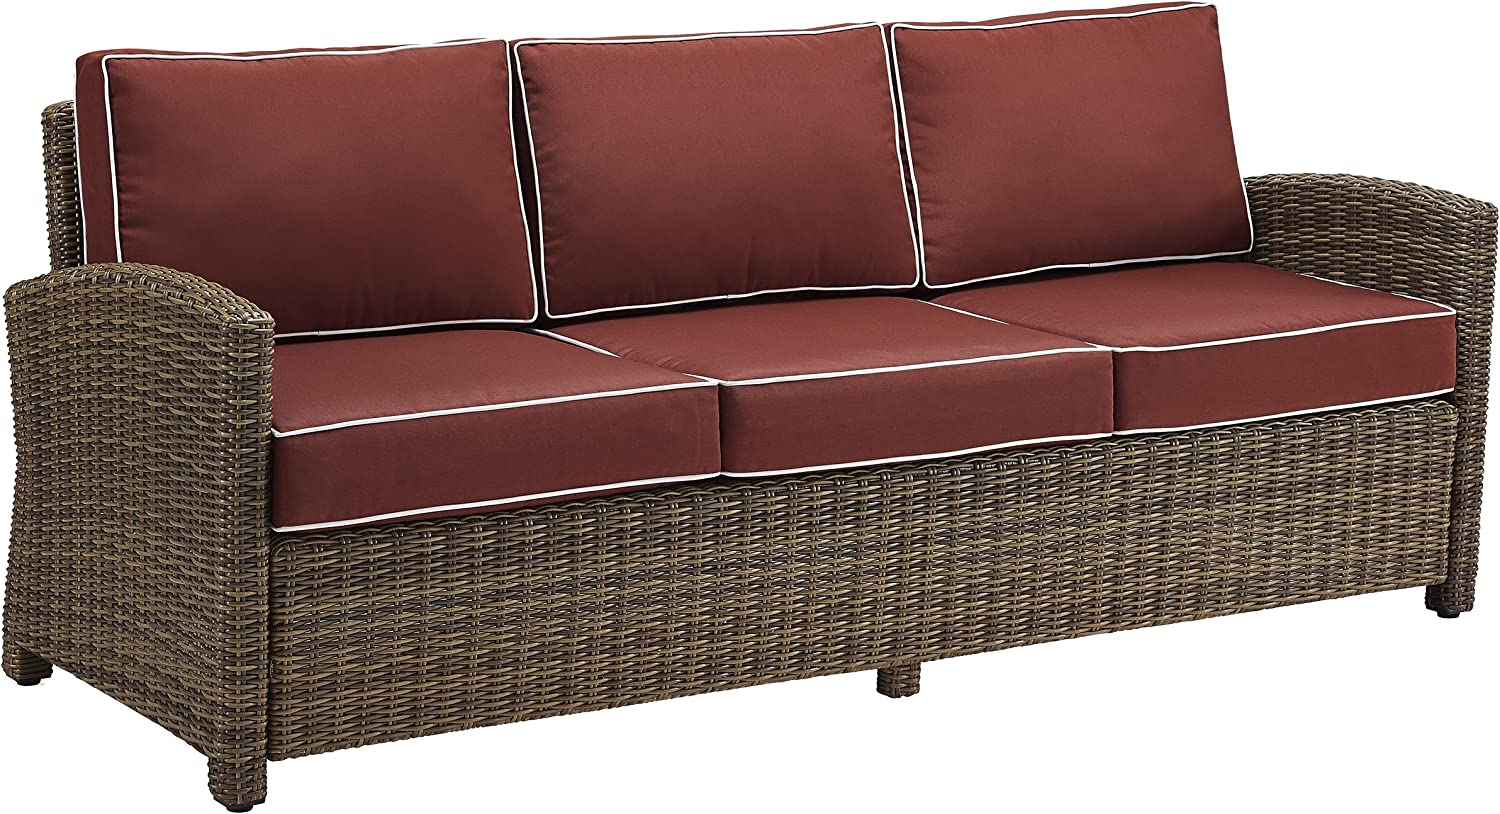 Crosley Furniture Ko70049wb Sg Bradenton Outdoor Wicker Sofa Brown With Sangria Cushions Garden Outdoor